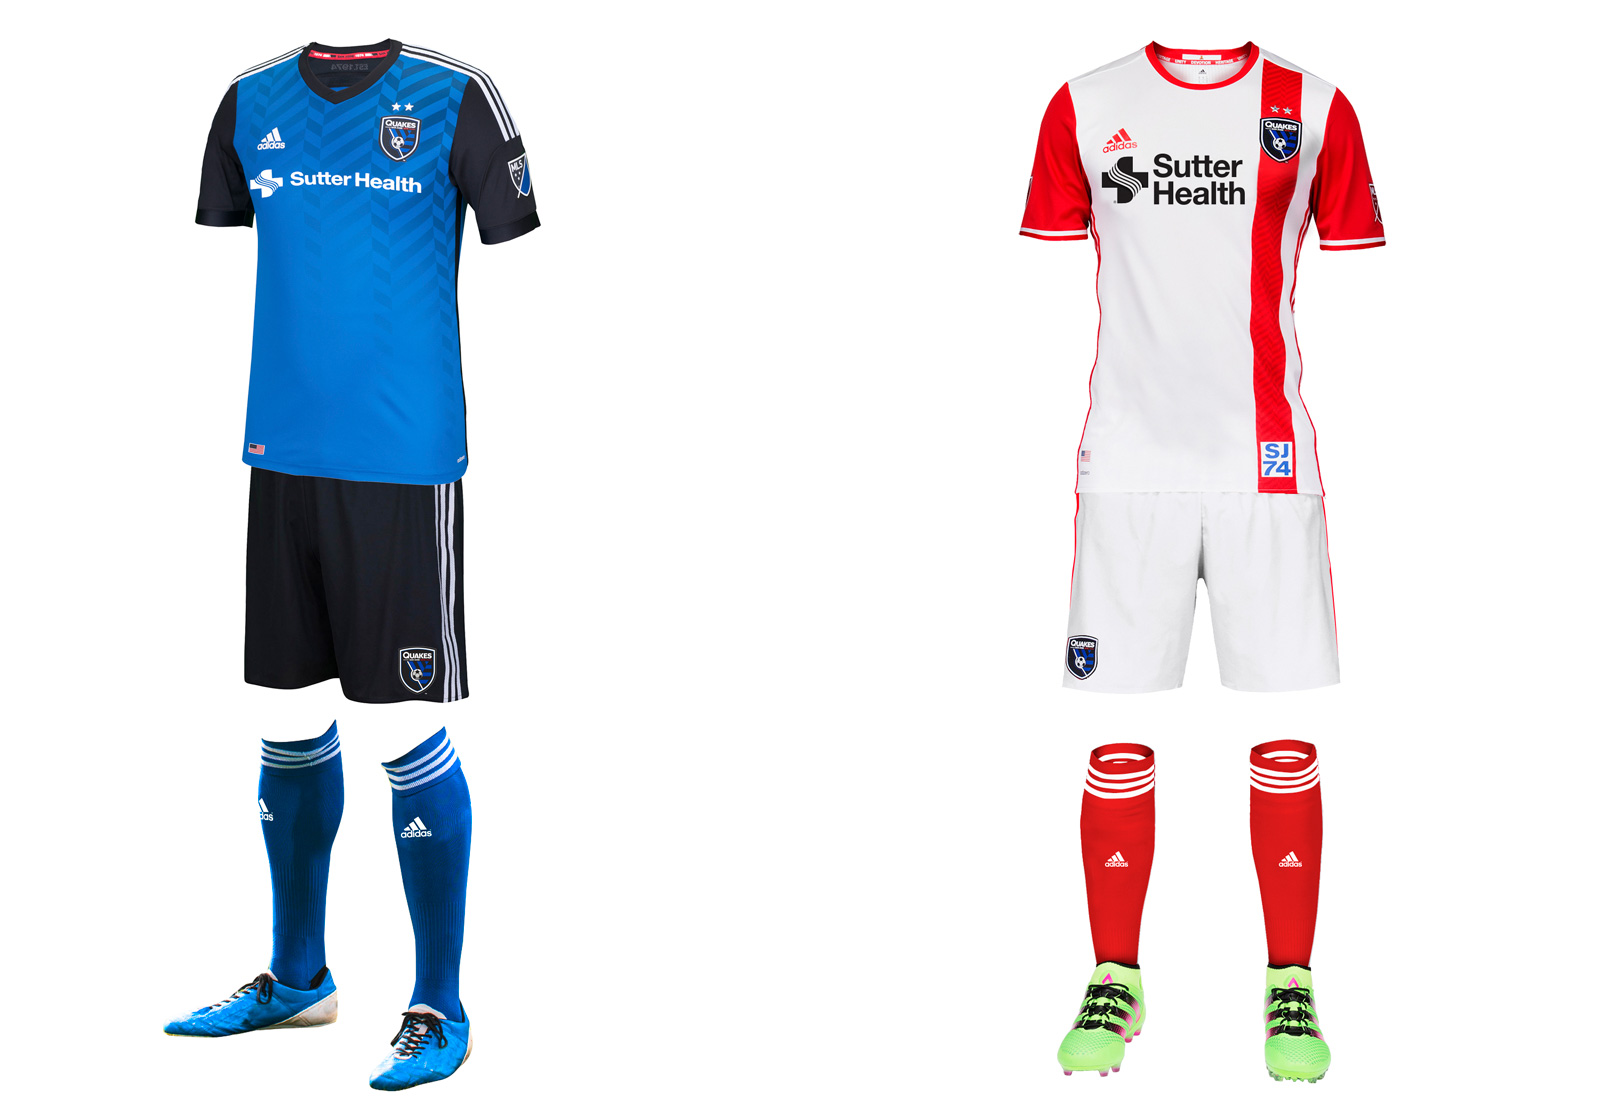 San Jose Earthquakes 2016 MLS uniforms